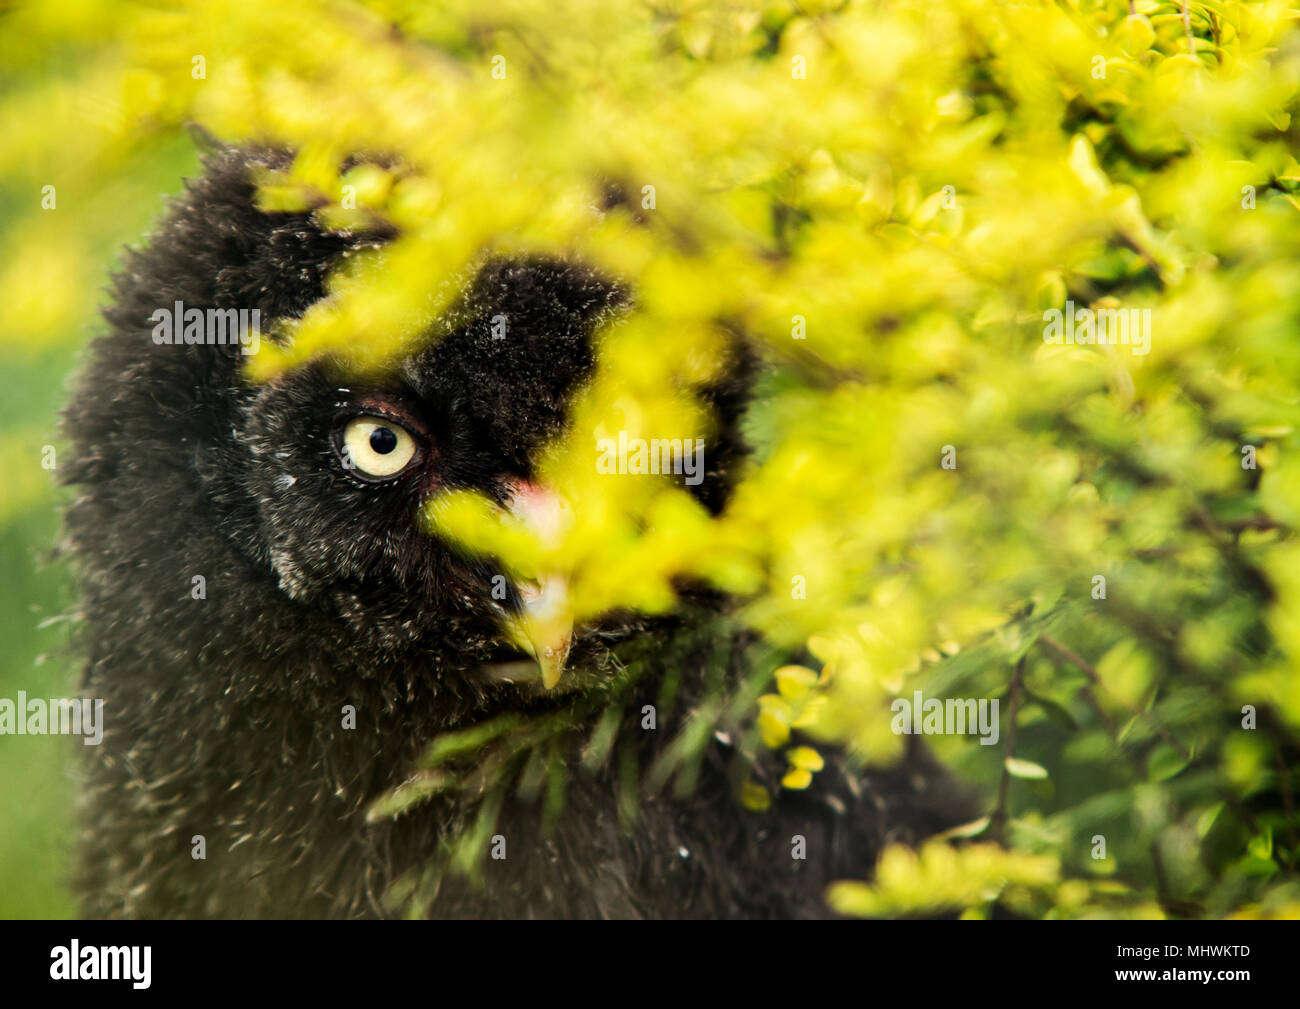 Cute little owlet peeping out from behind a bush - Stock Image